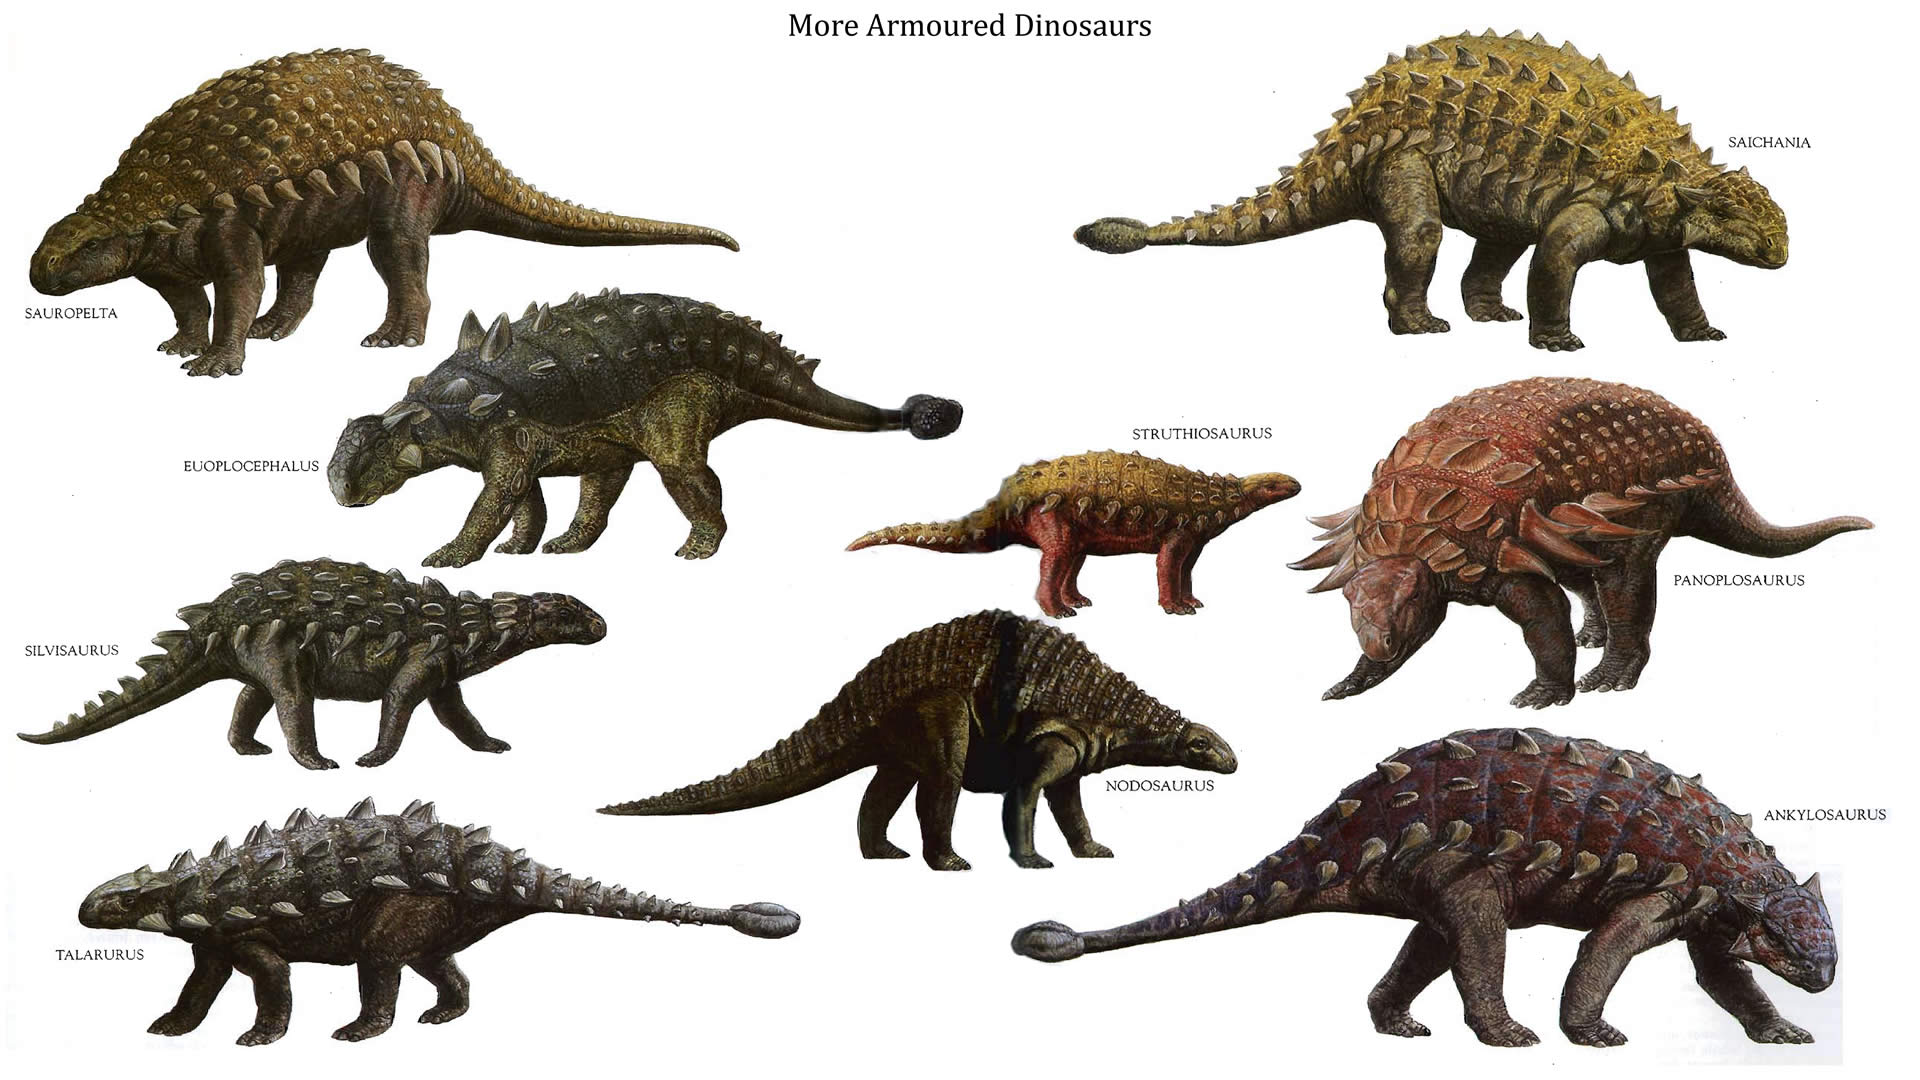 More Armoured Dinosaurs Kinds 300.04 Kb